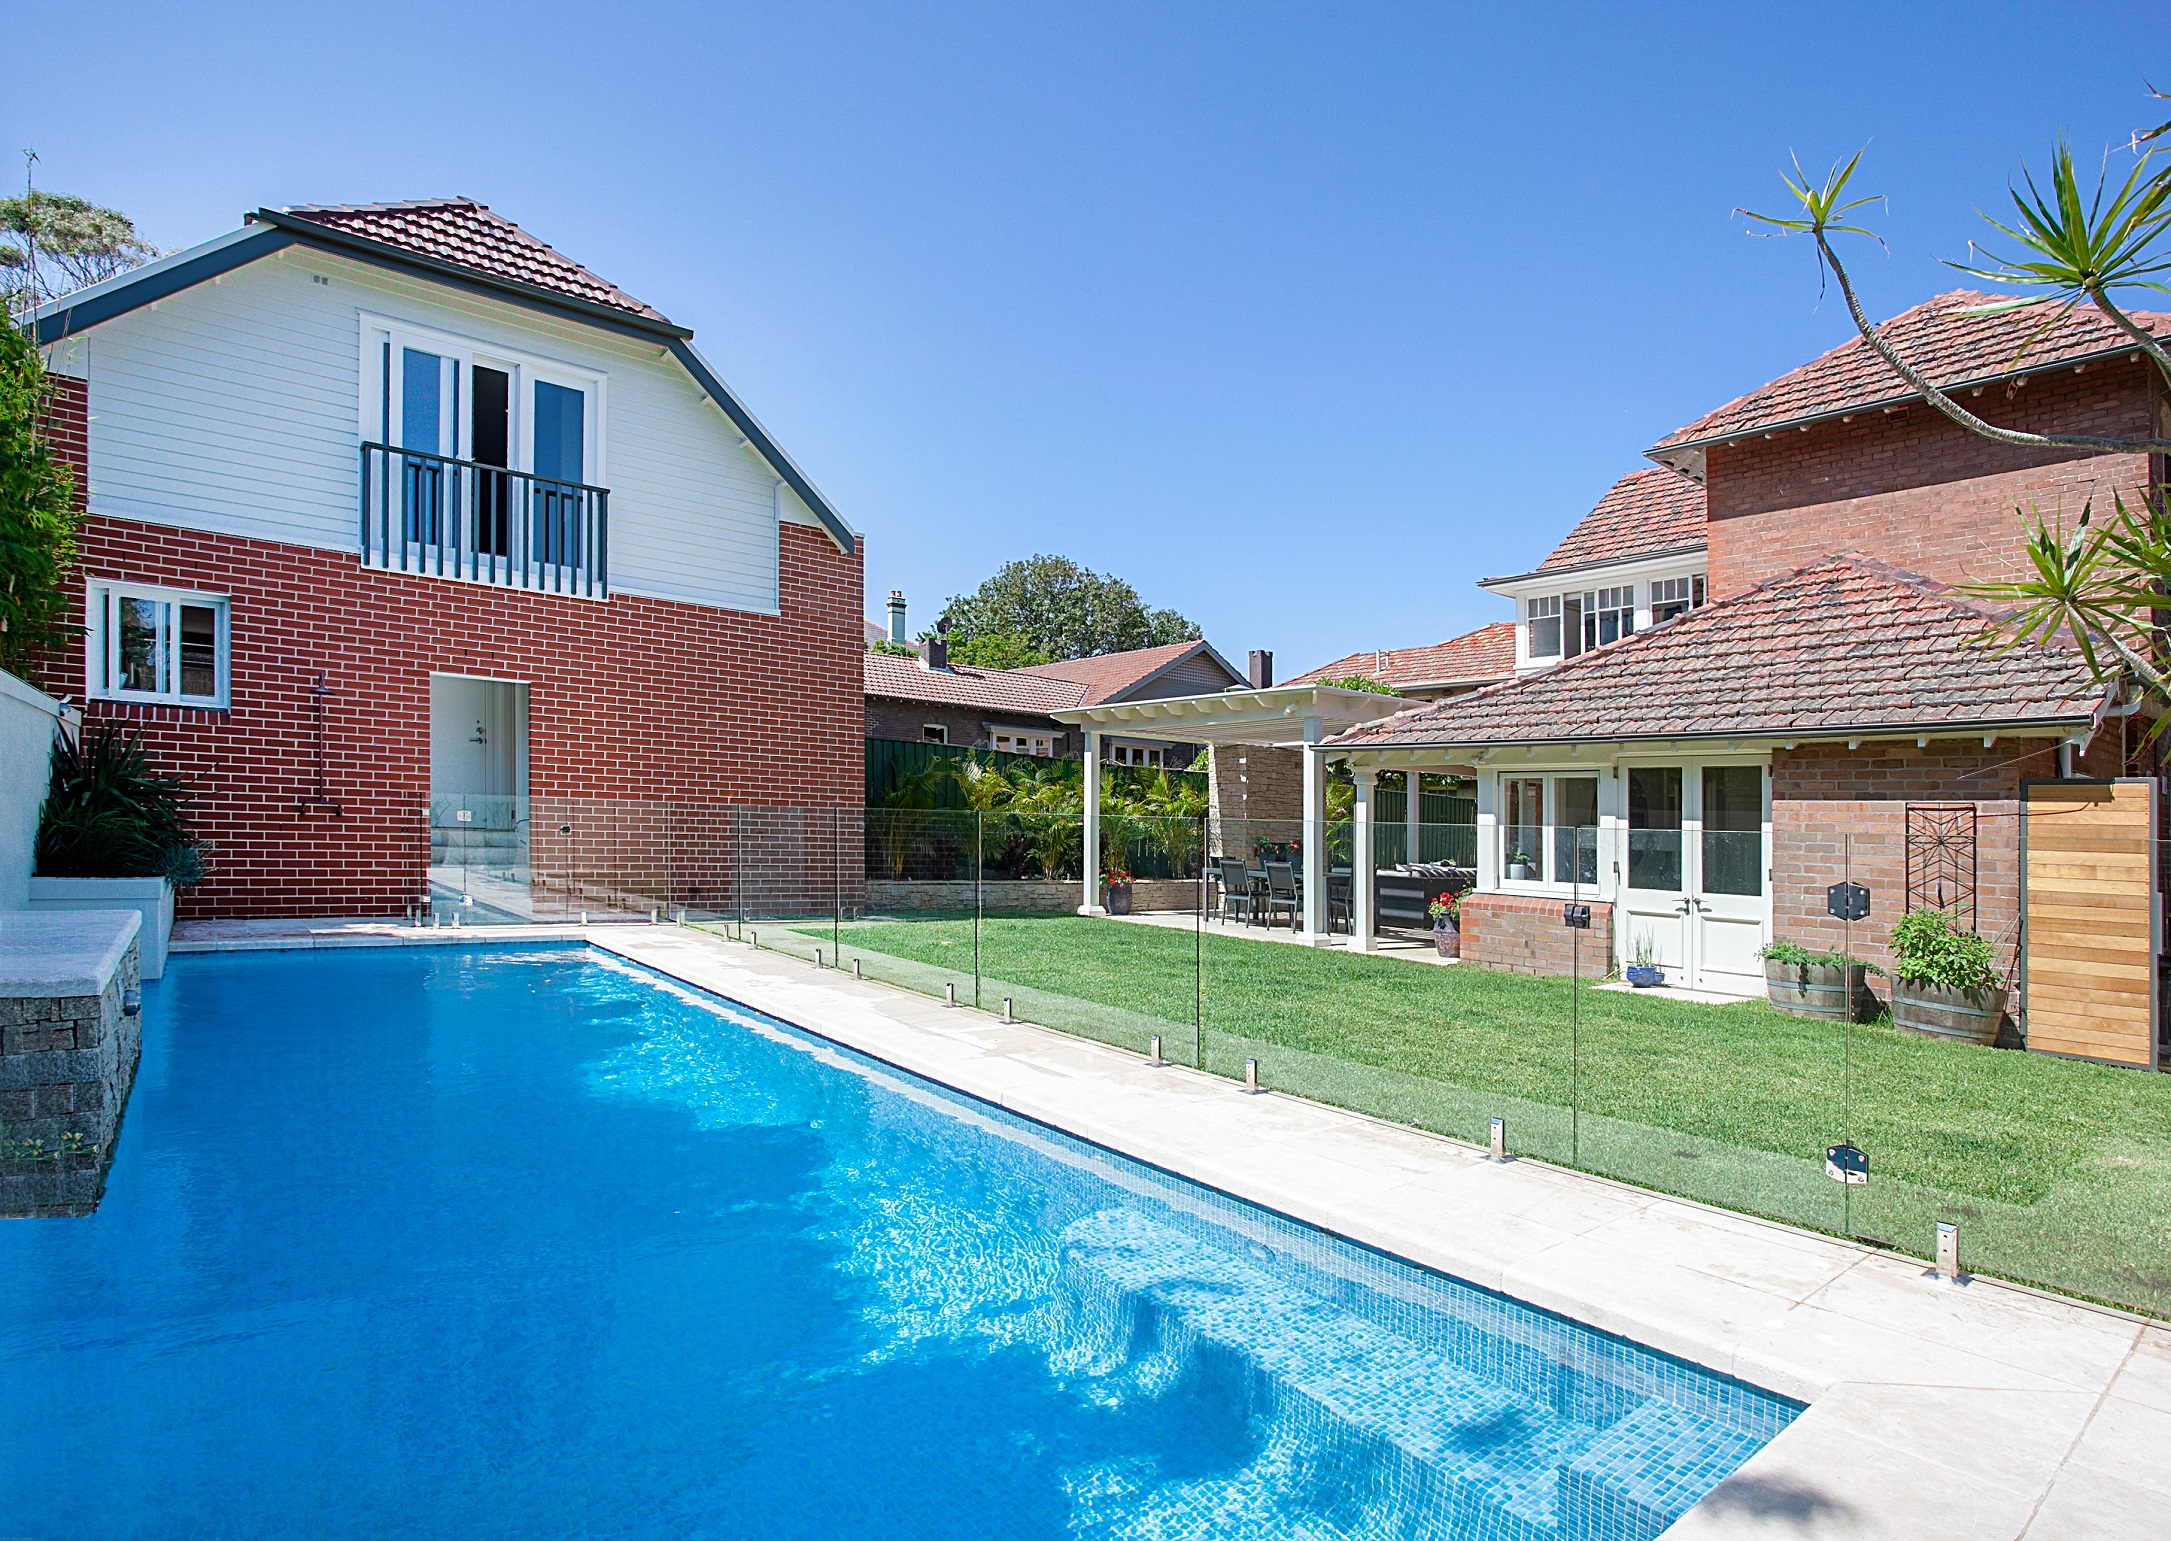 Heritage-Home-Restore-Swimming-Pool-Michael-Bell-Architects-Sydney